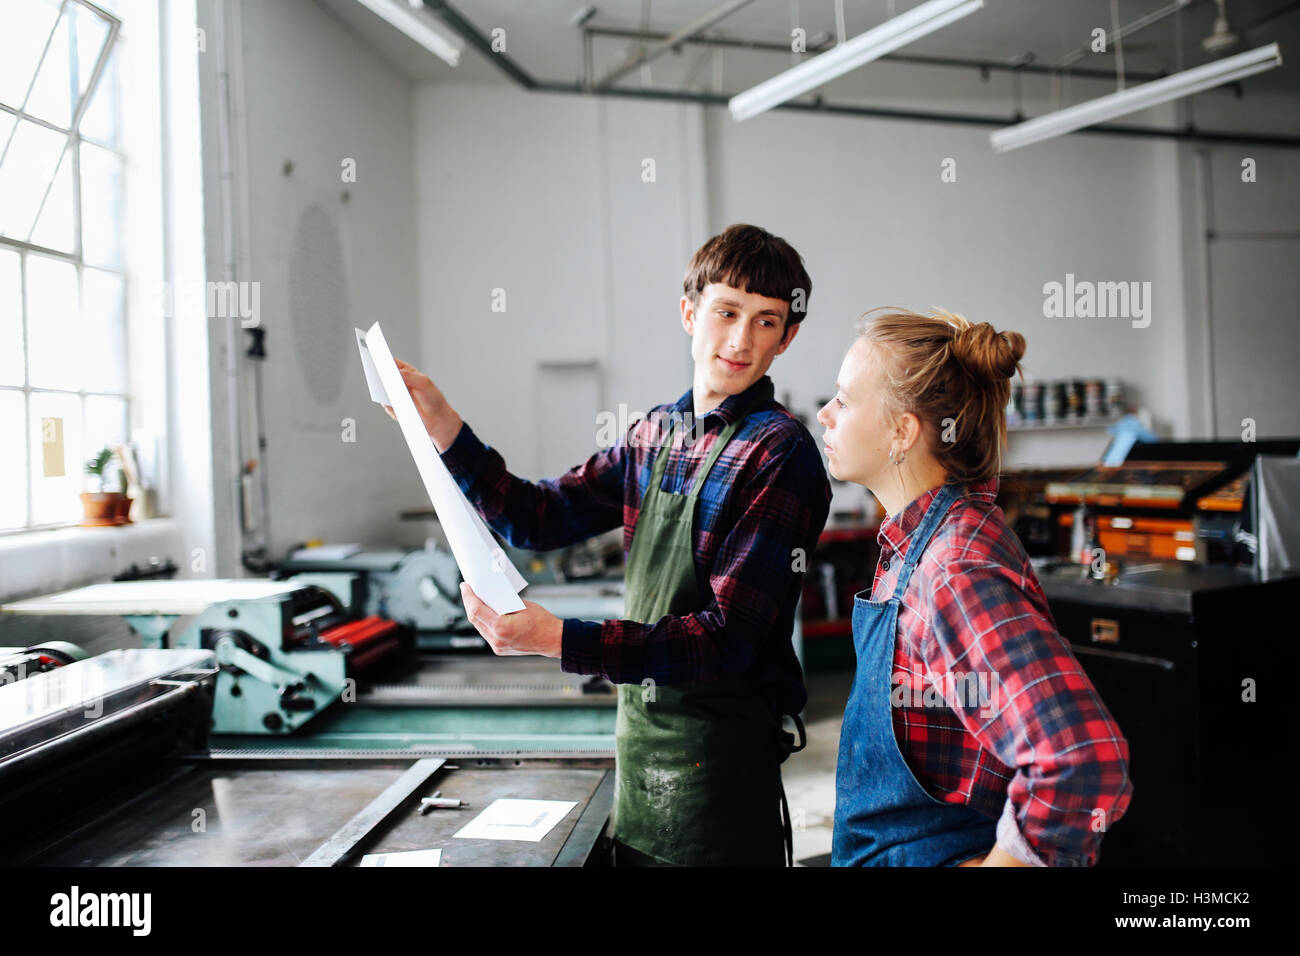 Young male and female craftsperson looking at print in book arts workshop - Stock Image